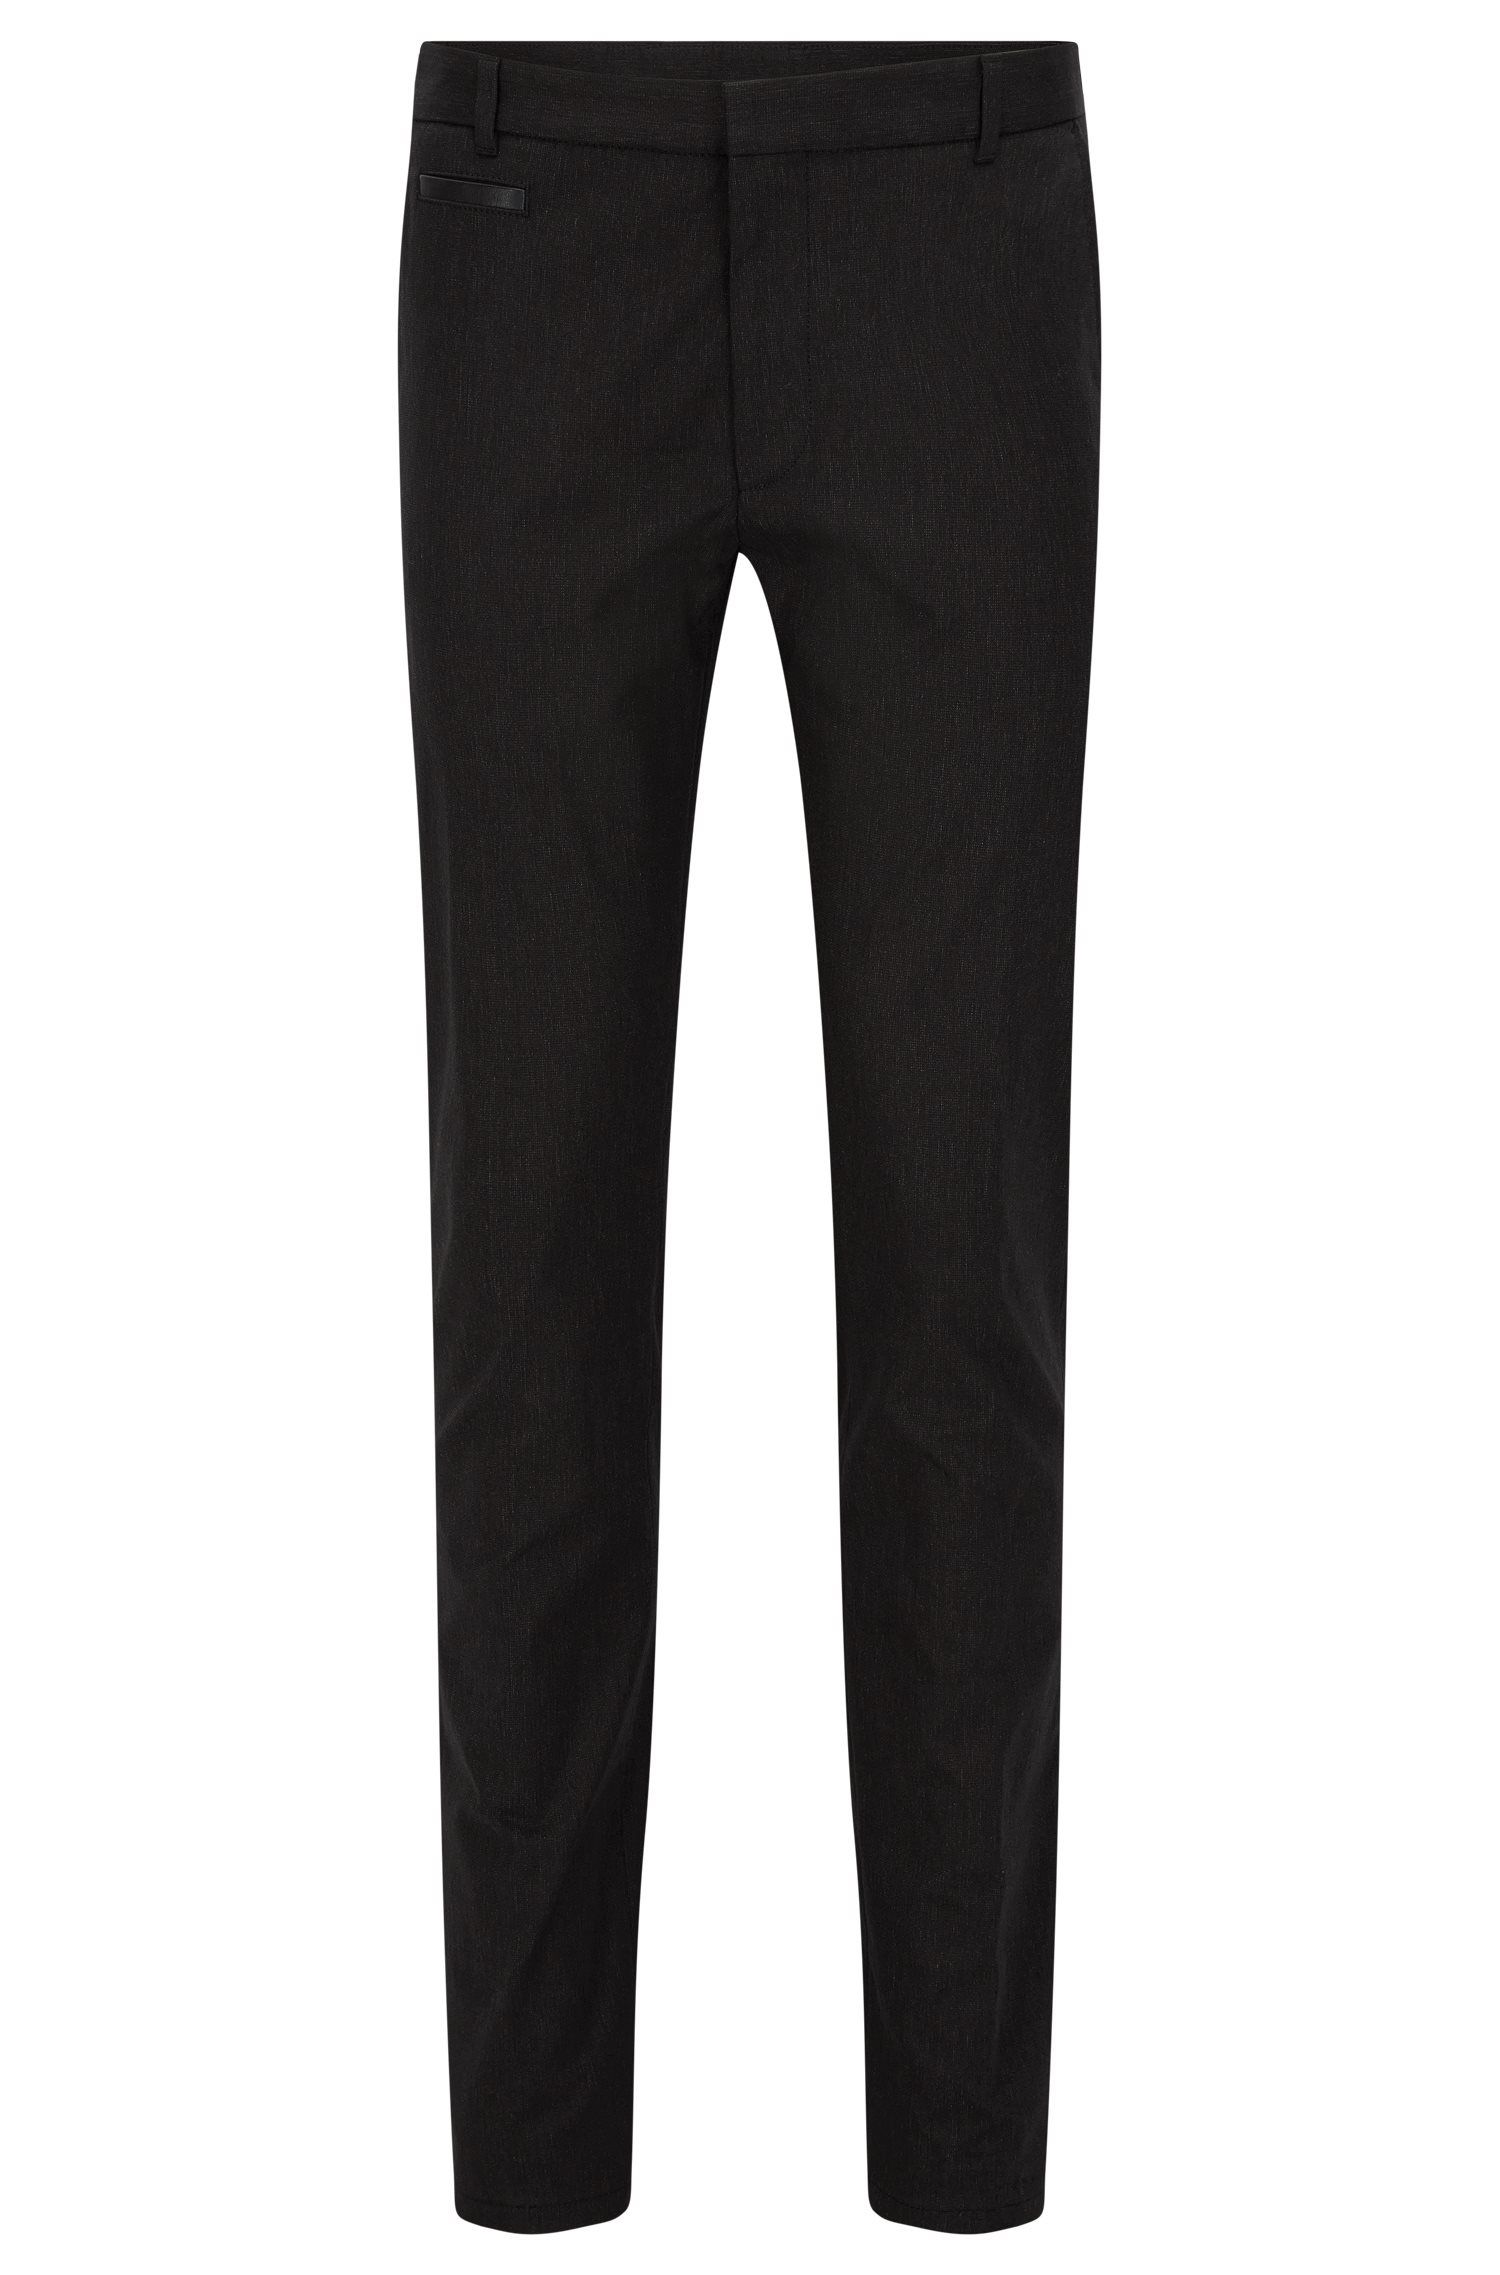 Extra-slim-fit trousers in cotton blend with leather piping detail